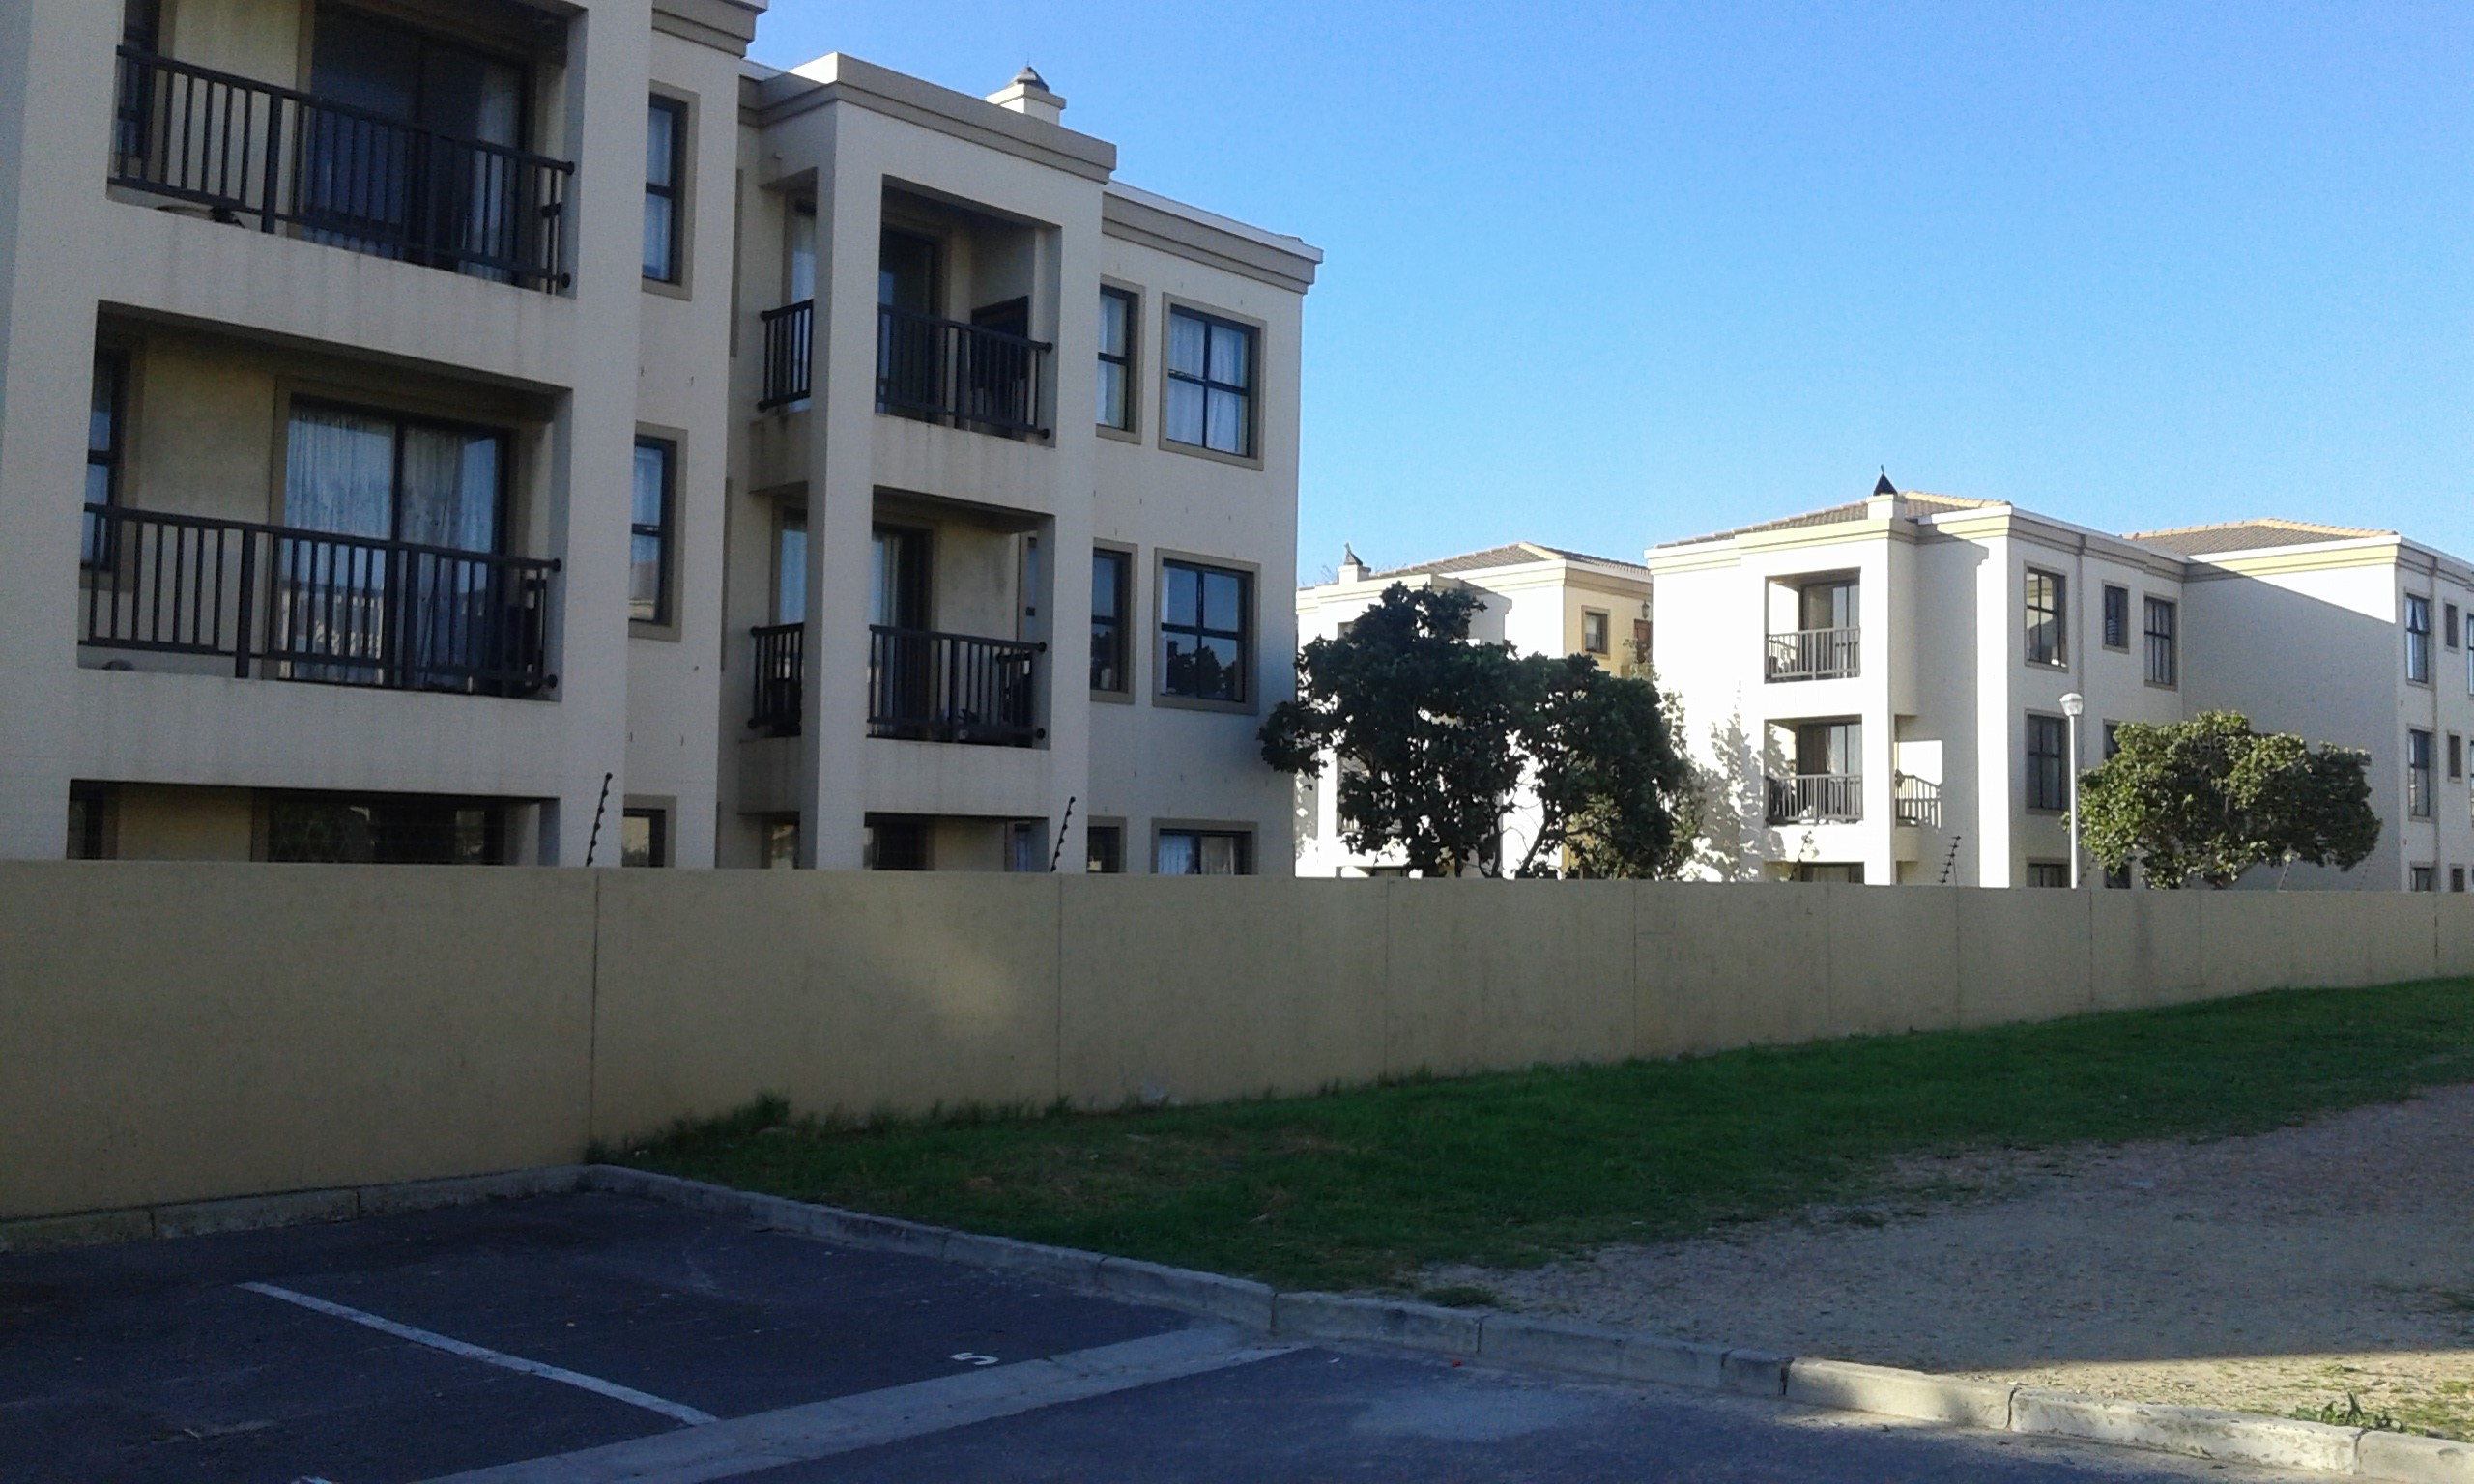 3 Bedroom apartment for a young family